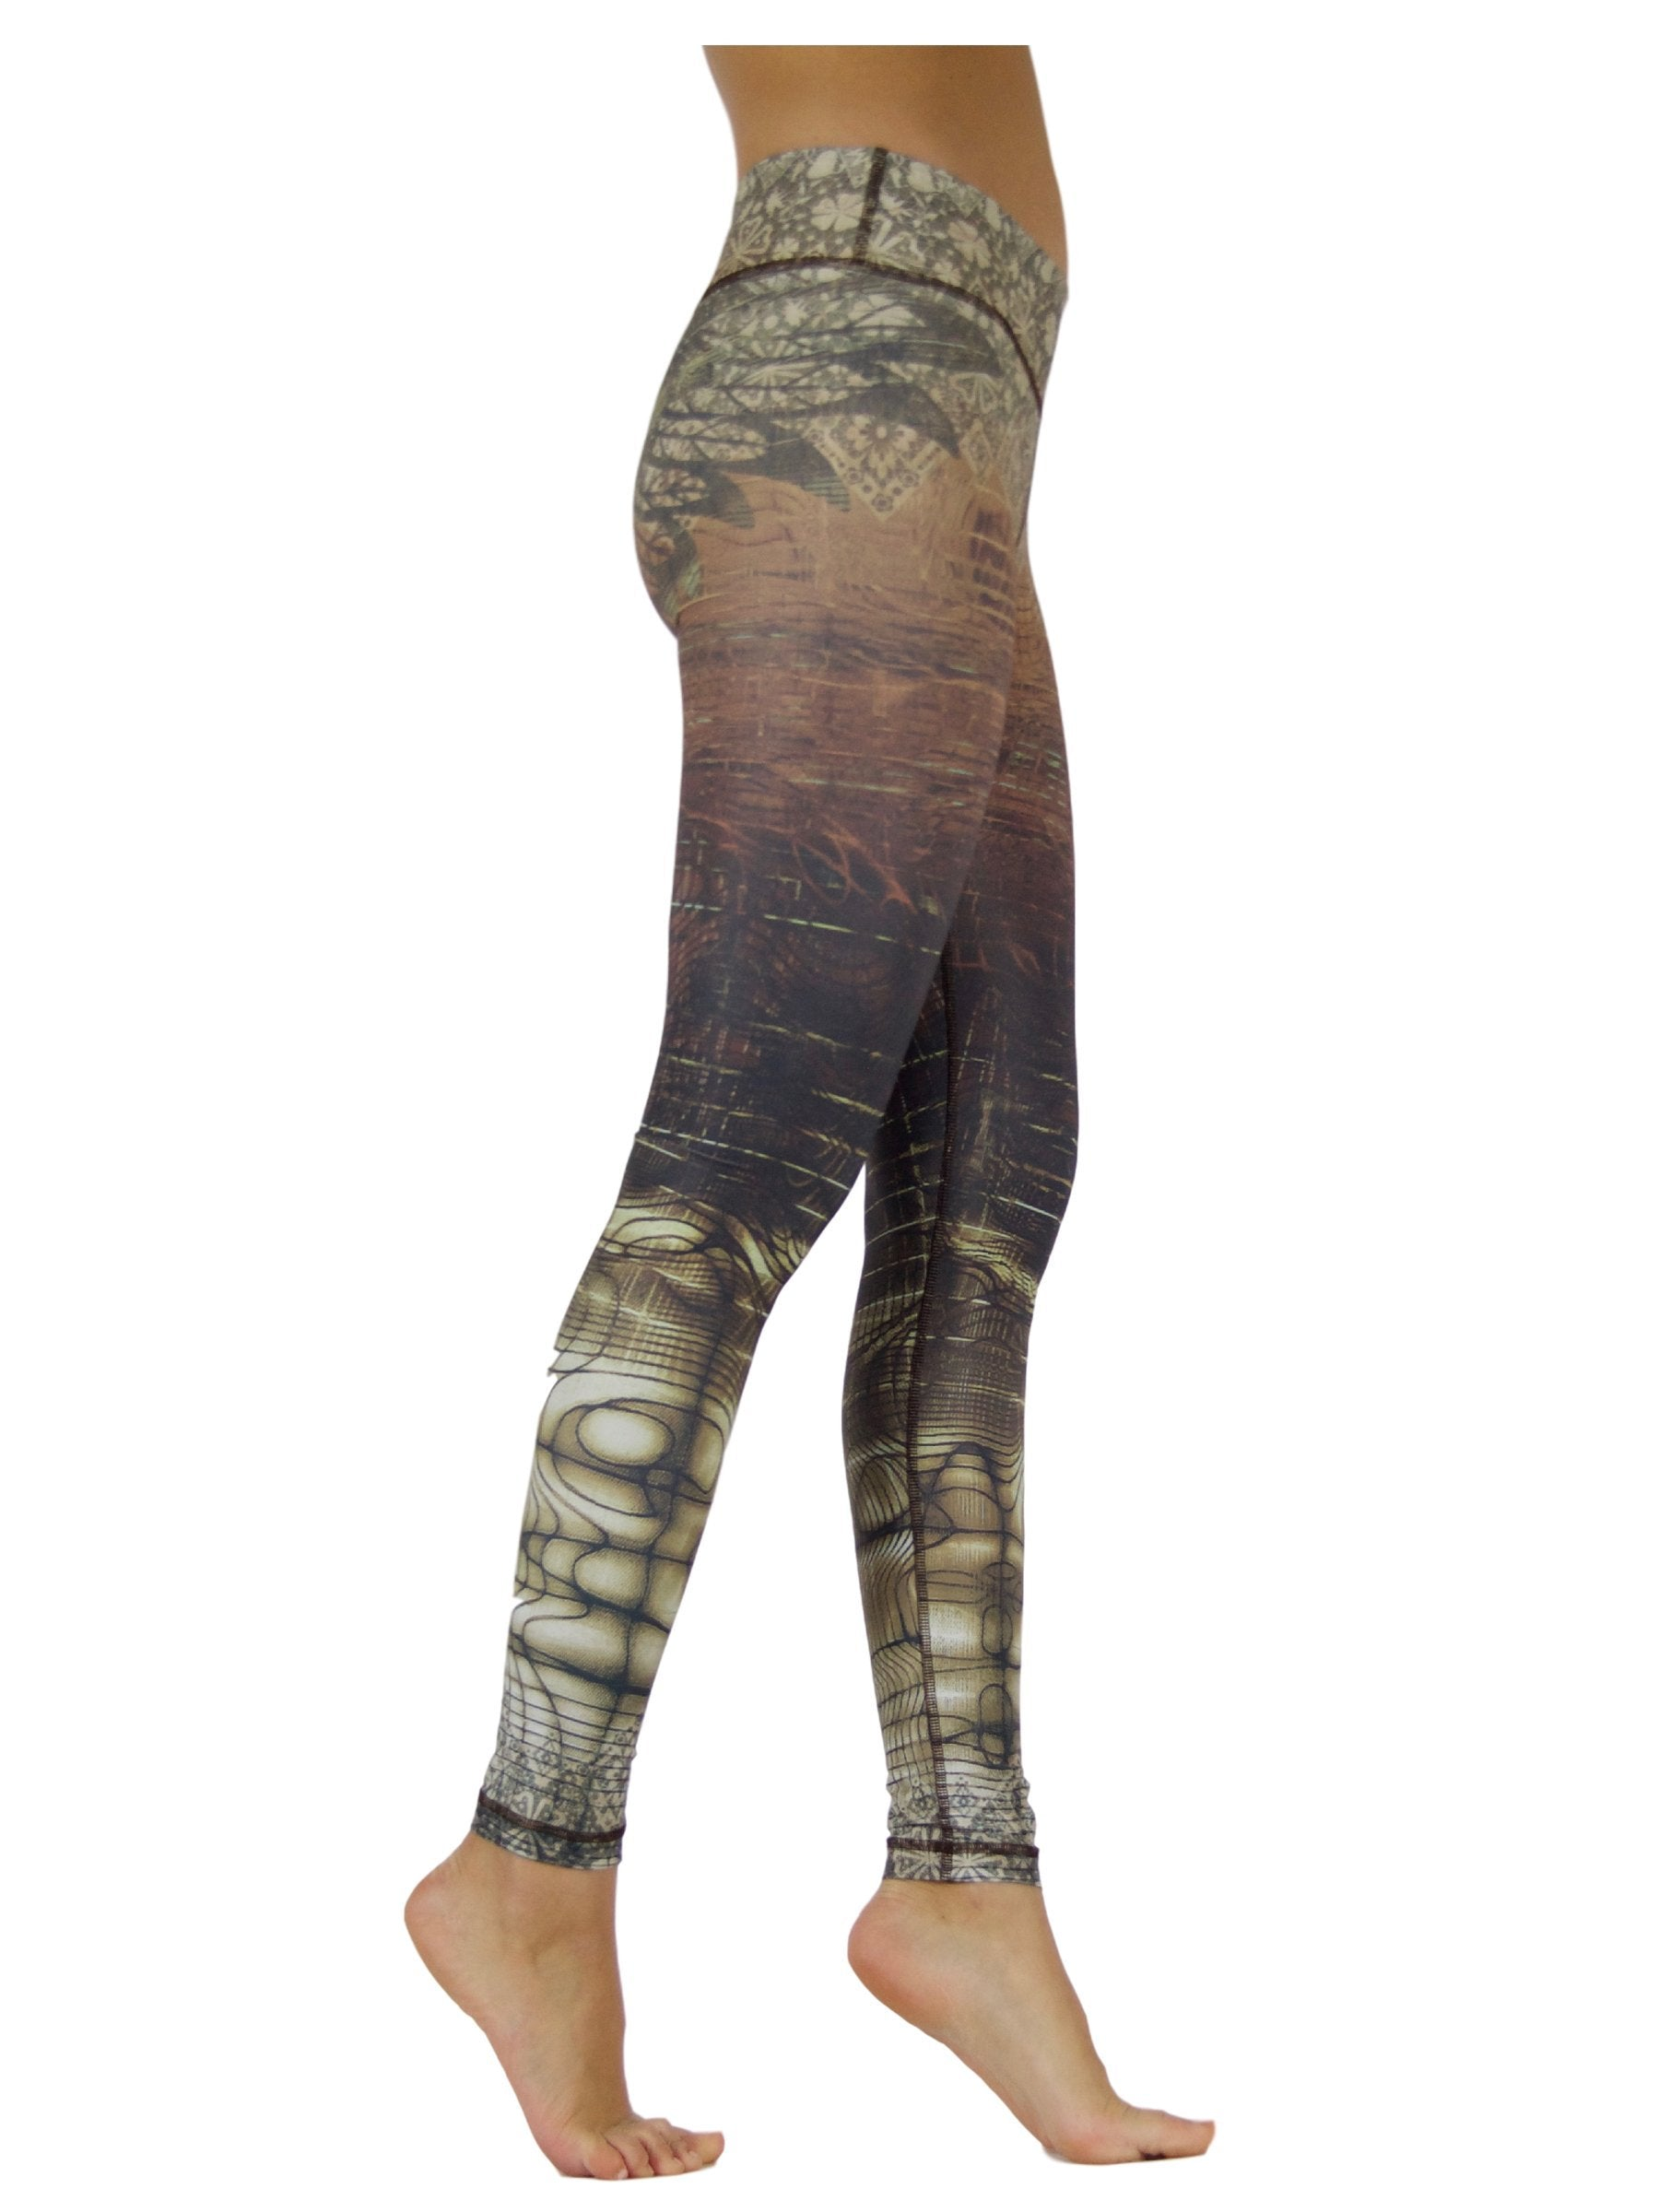 Little Feather by Niyama - High Quality, Yoga Legging for Movement Artists.